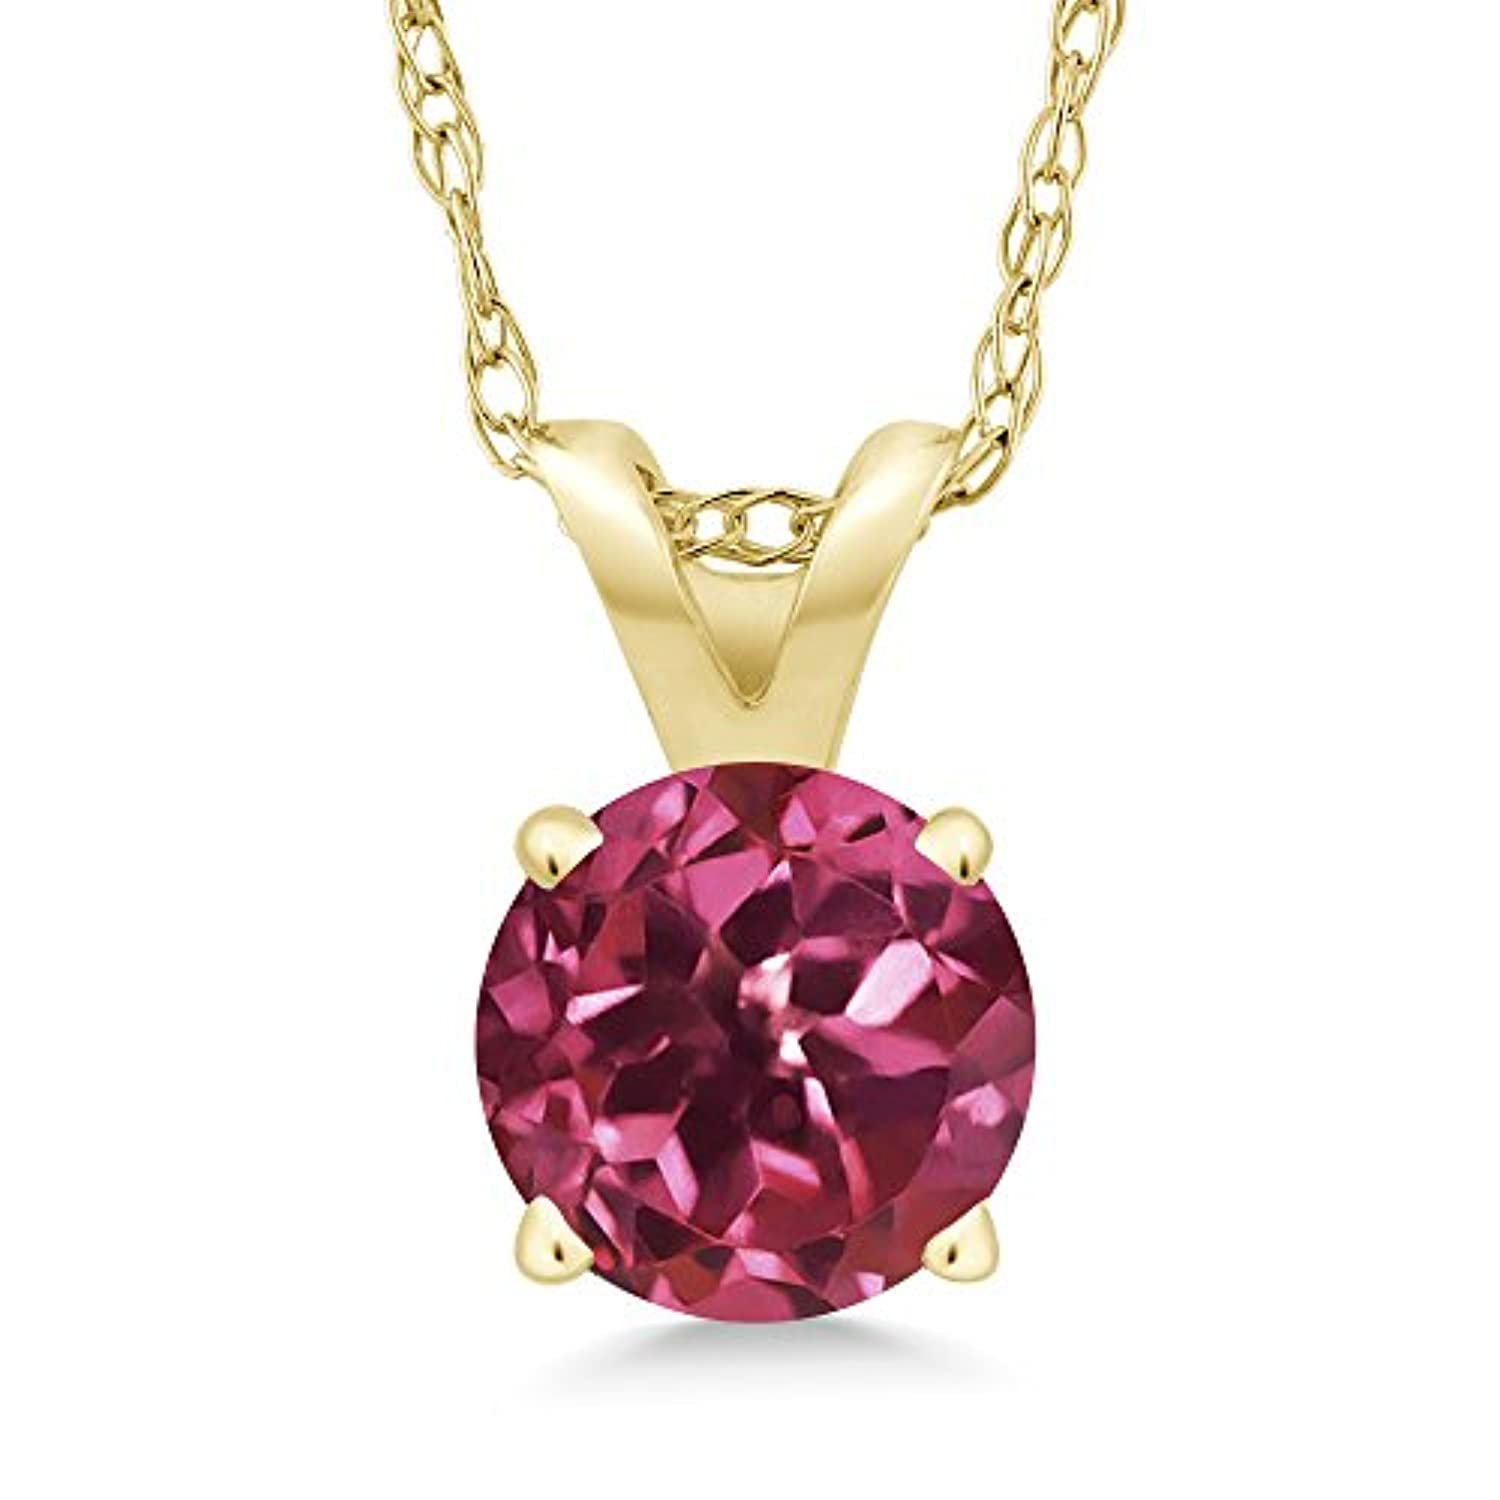 14K Gold Pink Tourmaline Pendant Necklace